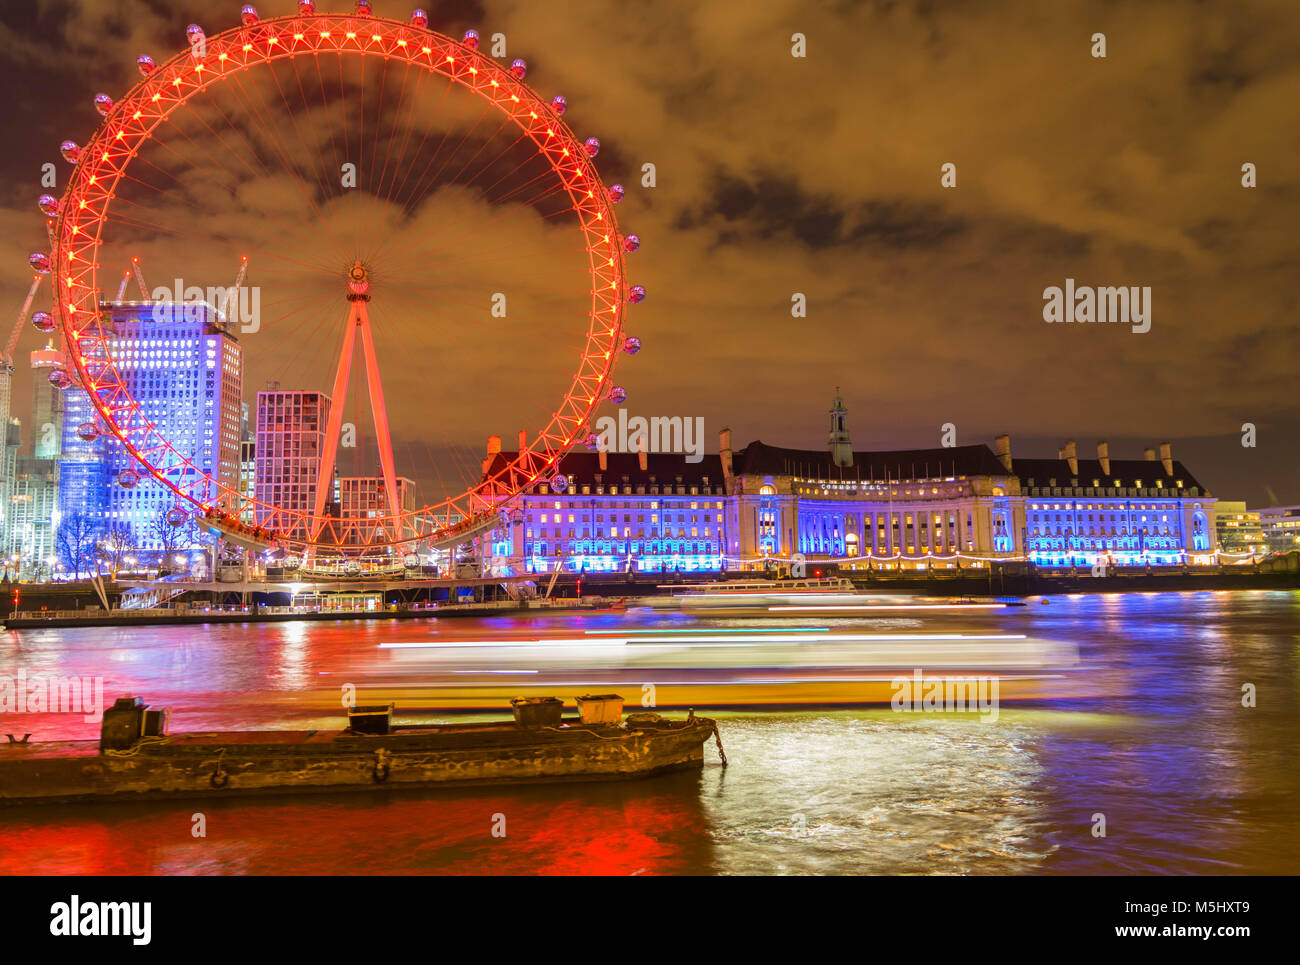 London, United Kingdom, February 17, 2018: UK skyline in the evening. Ilumination of the London Eye and the buildings - Stock Image